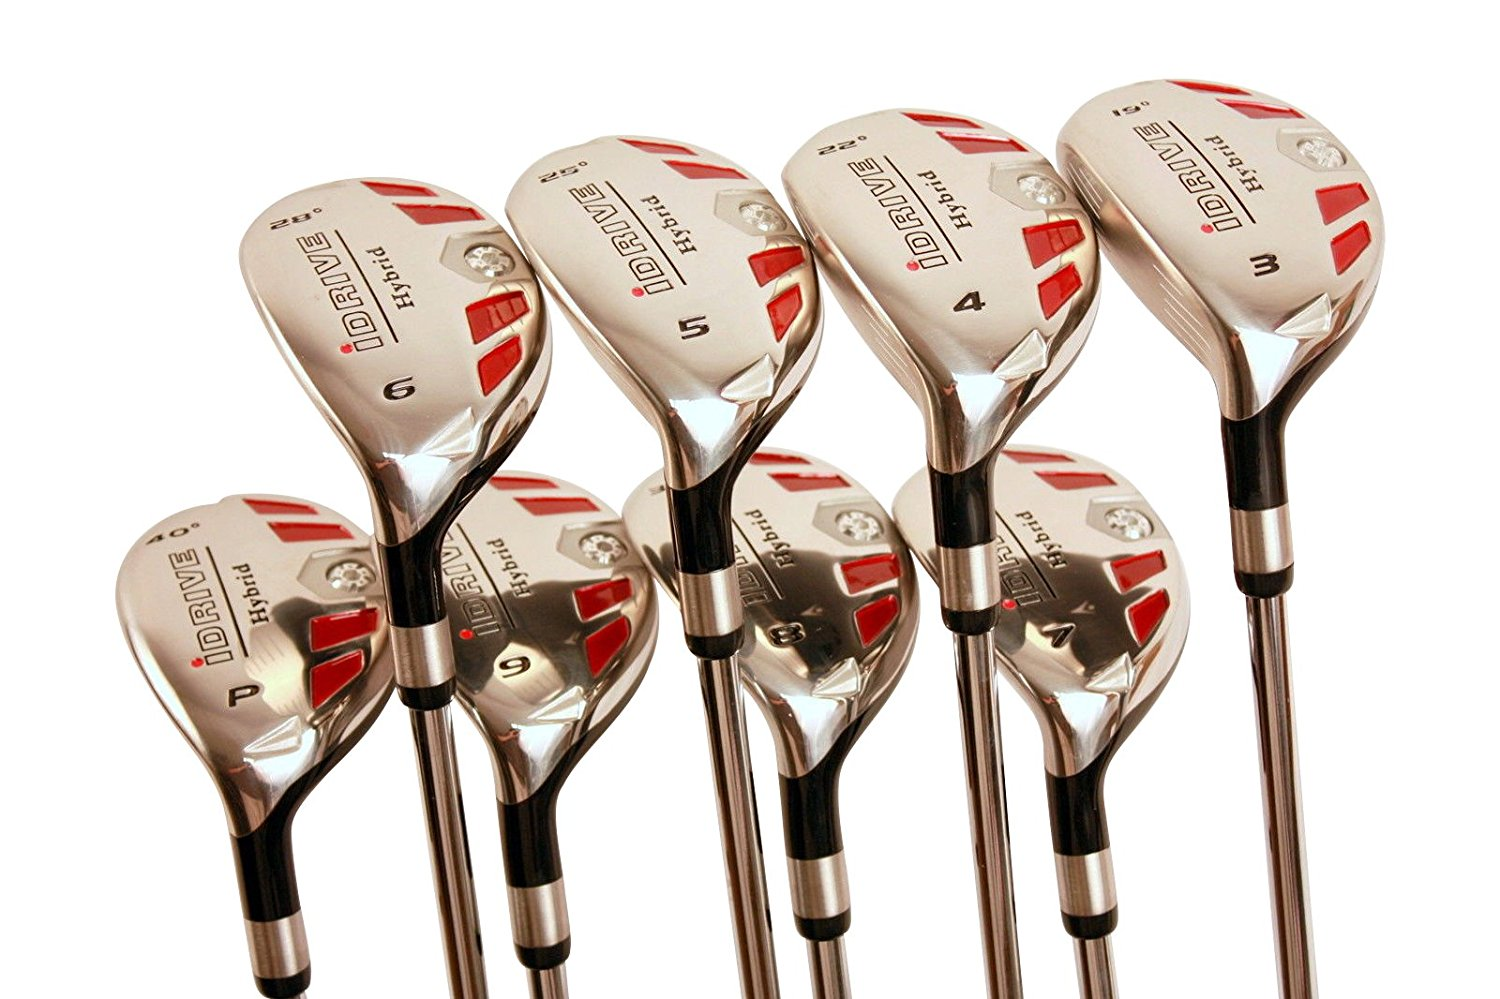 "Left Handed Petite Women's Golf Clubs All Ladies iDrive Hybrids Complete Set Includes: #3, 4, 5, 6, 7, 8, 9, PW. Lady ""L"" Flex New Rescue Utility Clubs. (Petite Short Women - 4'10'' to 5'3"")"